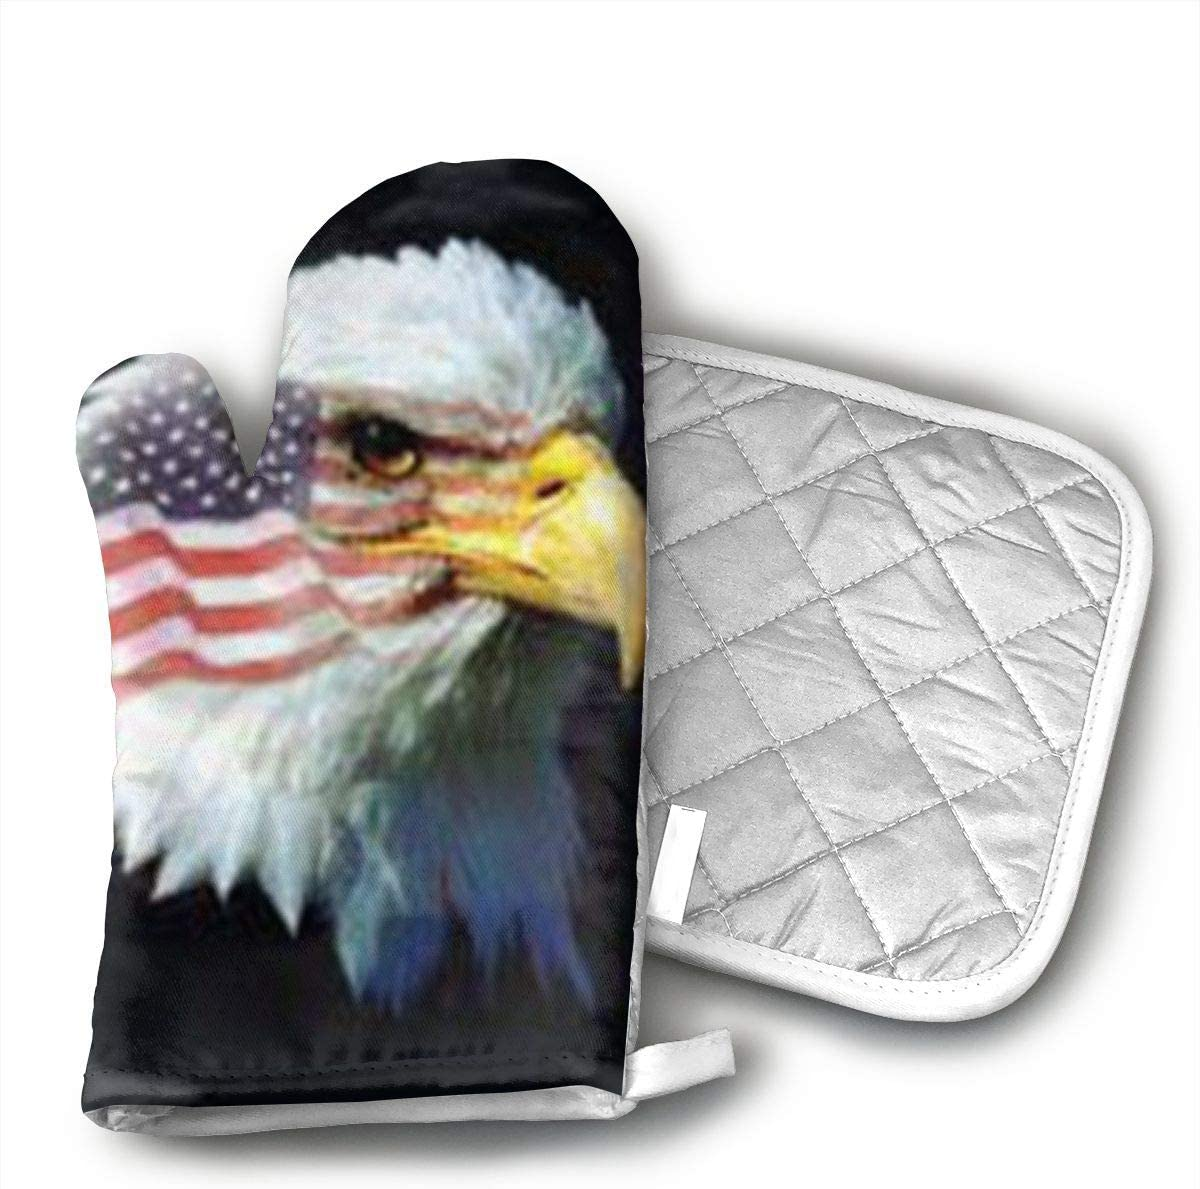 Wiqo9 Patriotic Eagle Flag Oven Mitts and Pot Holders Kitchen Mitten Cooking Gloves,Cooking, Baking, BBQ.